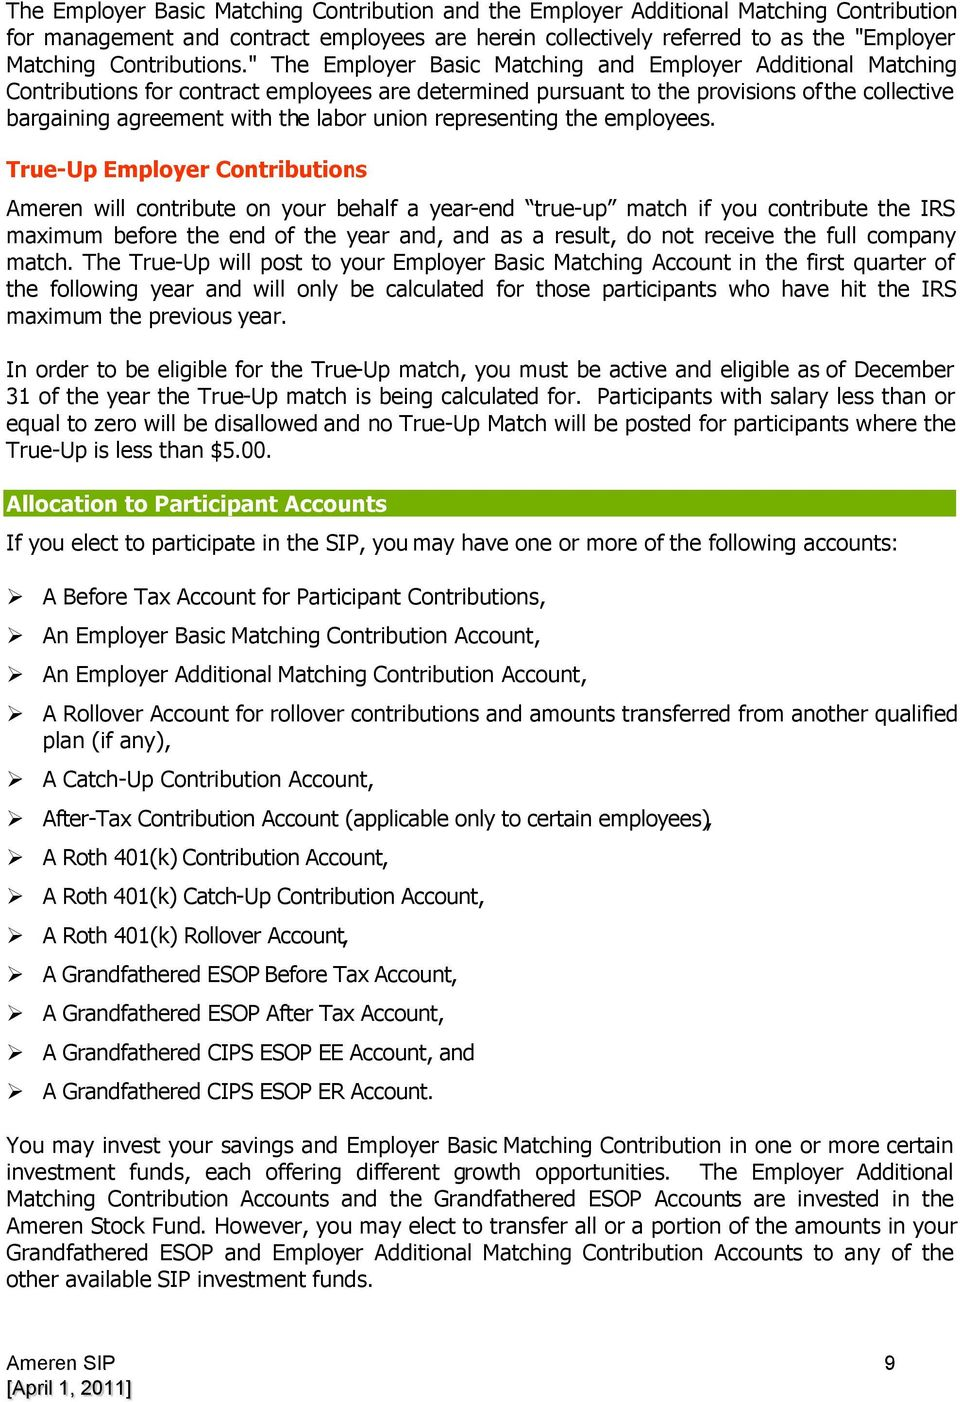 Ameren corporation savings investment plan pdf the employer basic matching and employer additional matching contributions for contract employees are determined pursuant platinumwayz